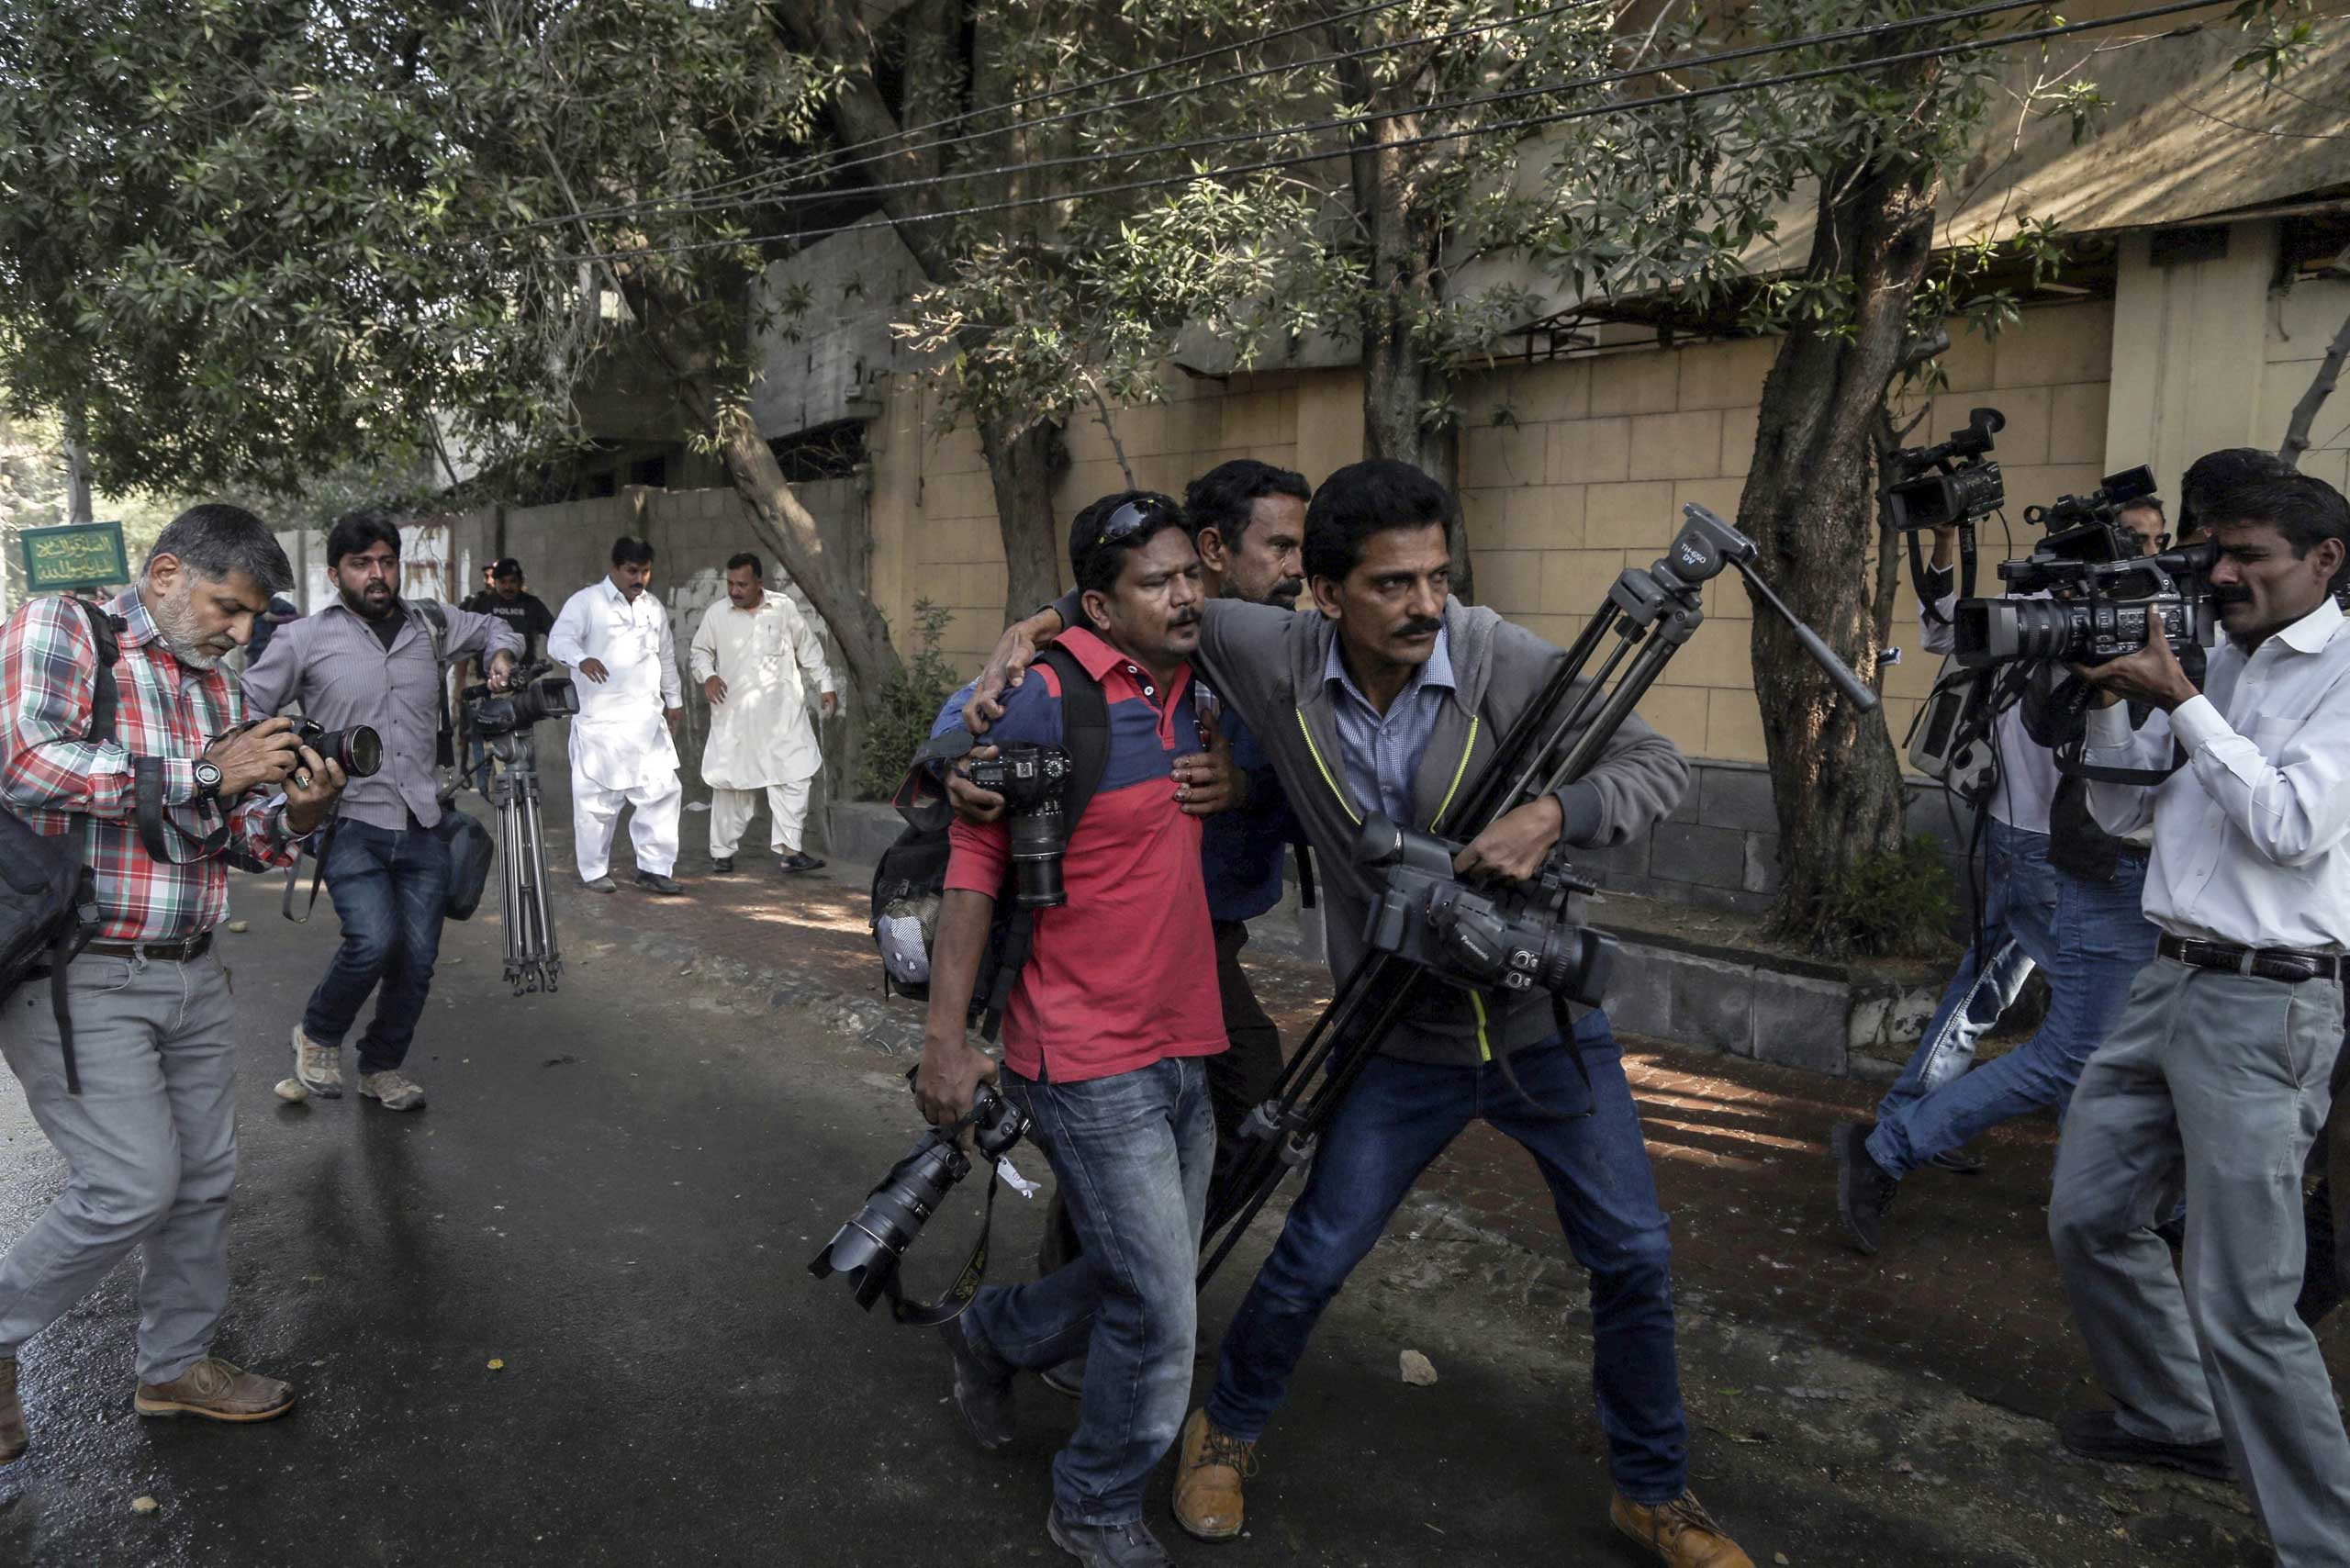 Pakistani journalists help a colleague who was injured in clashes between police and the supporters of Islamic political party Jamat-e-Islami during a protest against the French magzine 'Charlie Hebdo' for publishing the caricatures of the prophet Muhammad, in Karachi, Pakistan on Jan. 16, 2015.